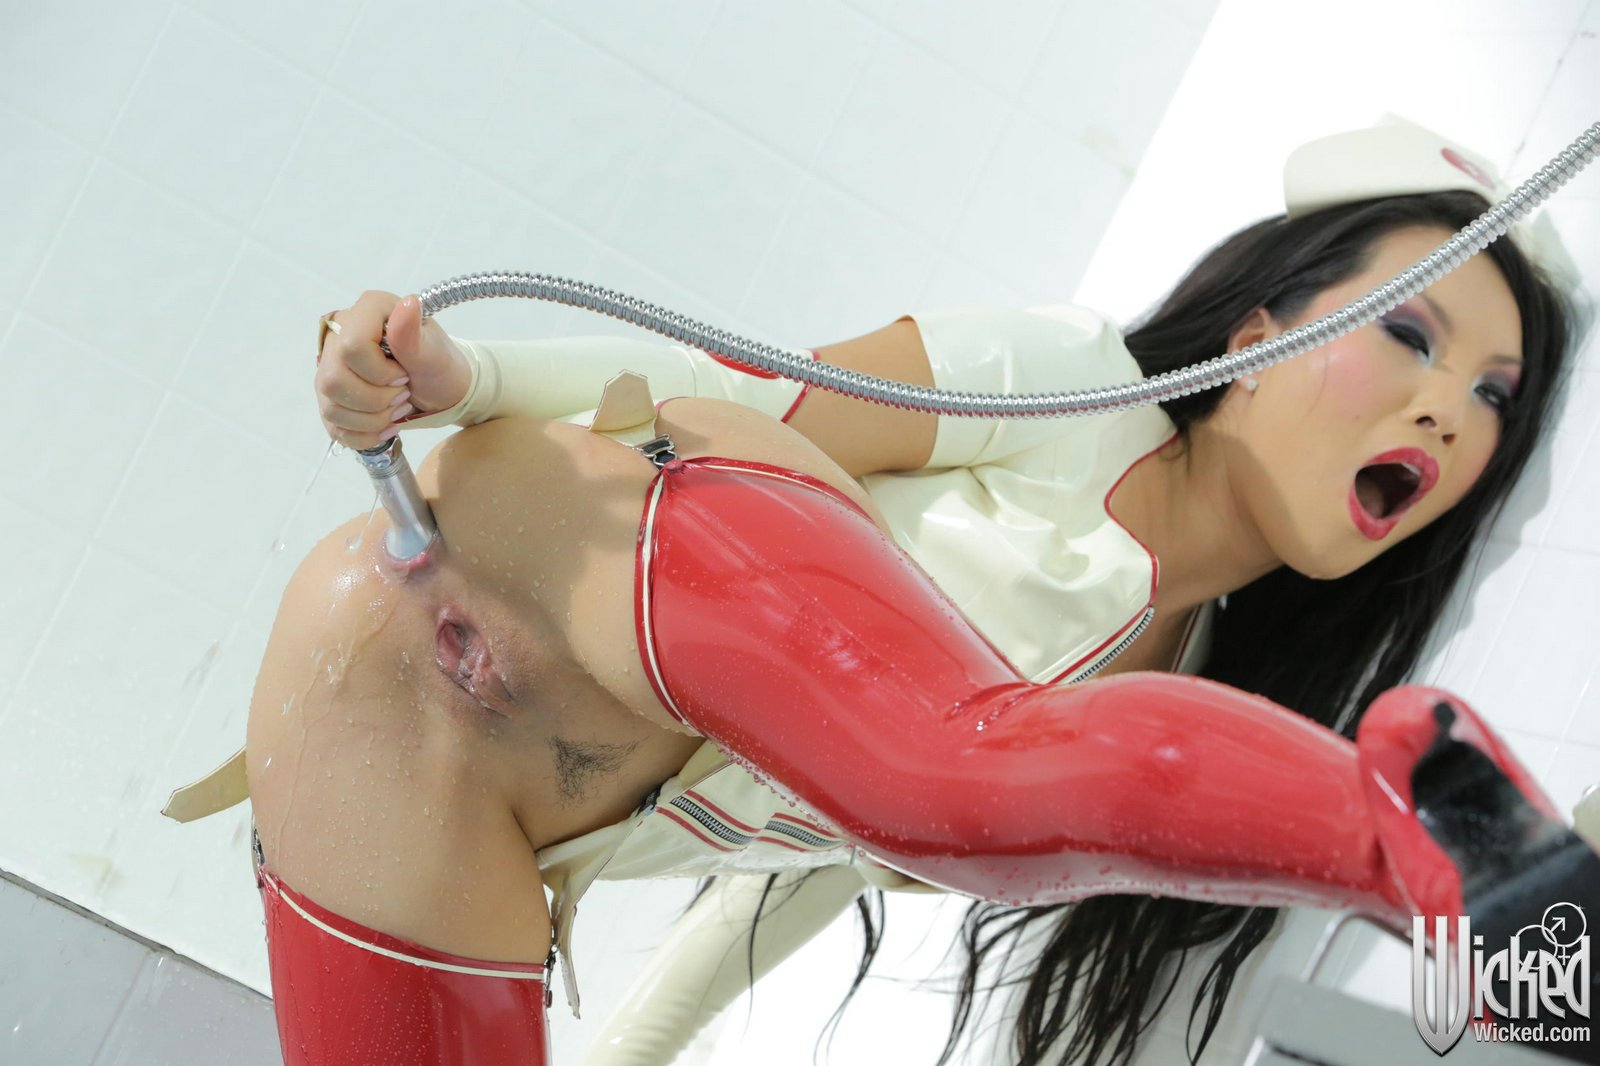 Blonde latex nurse fucking in gloves and stockings 7